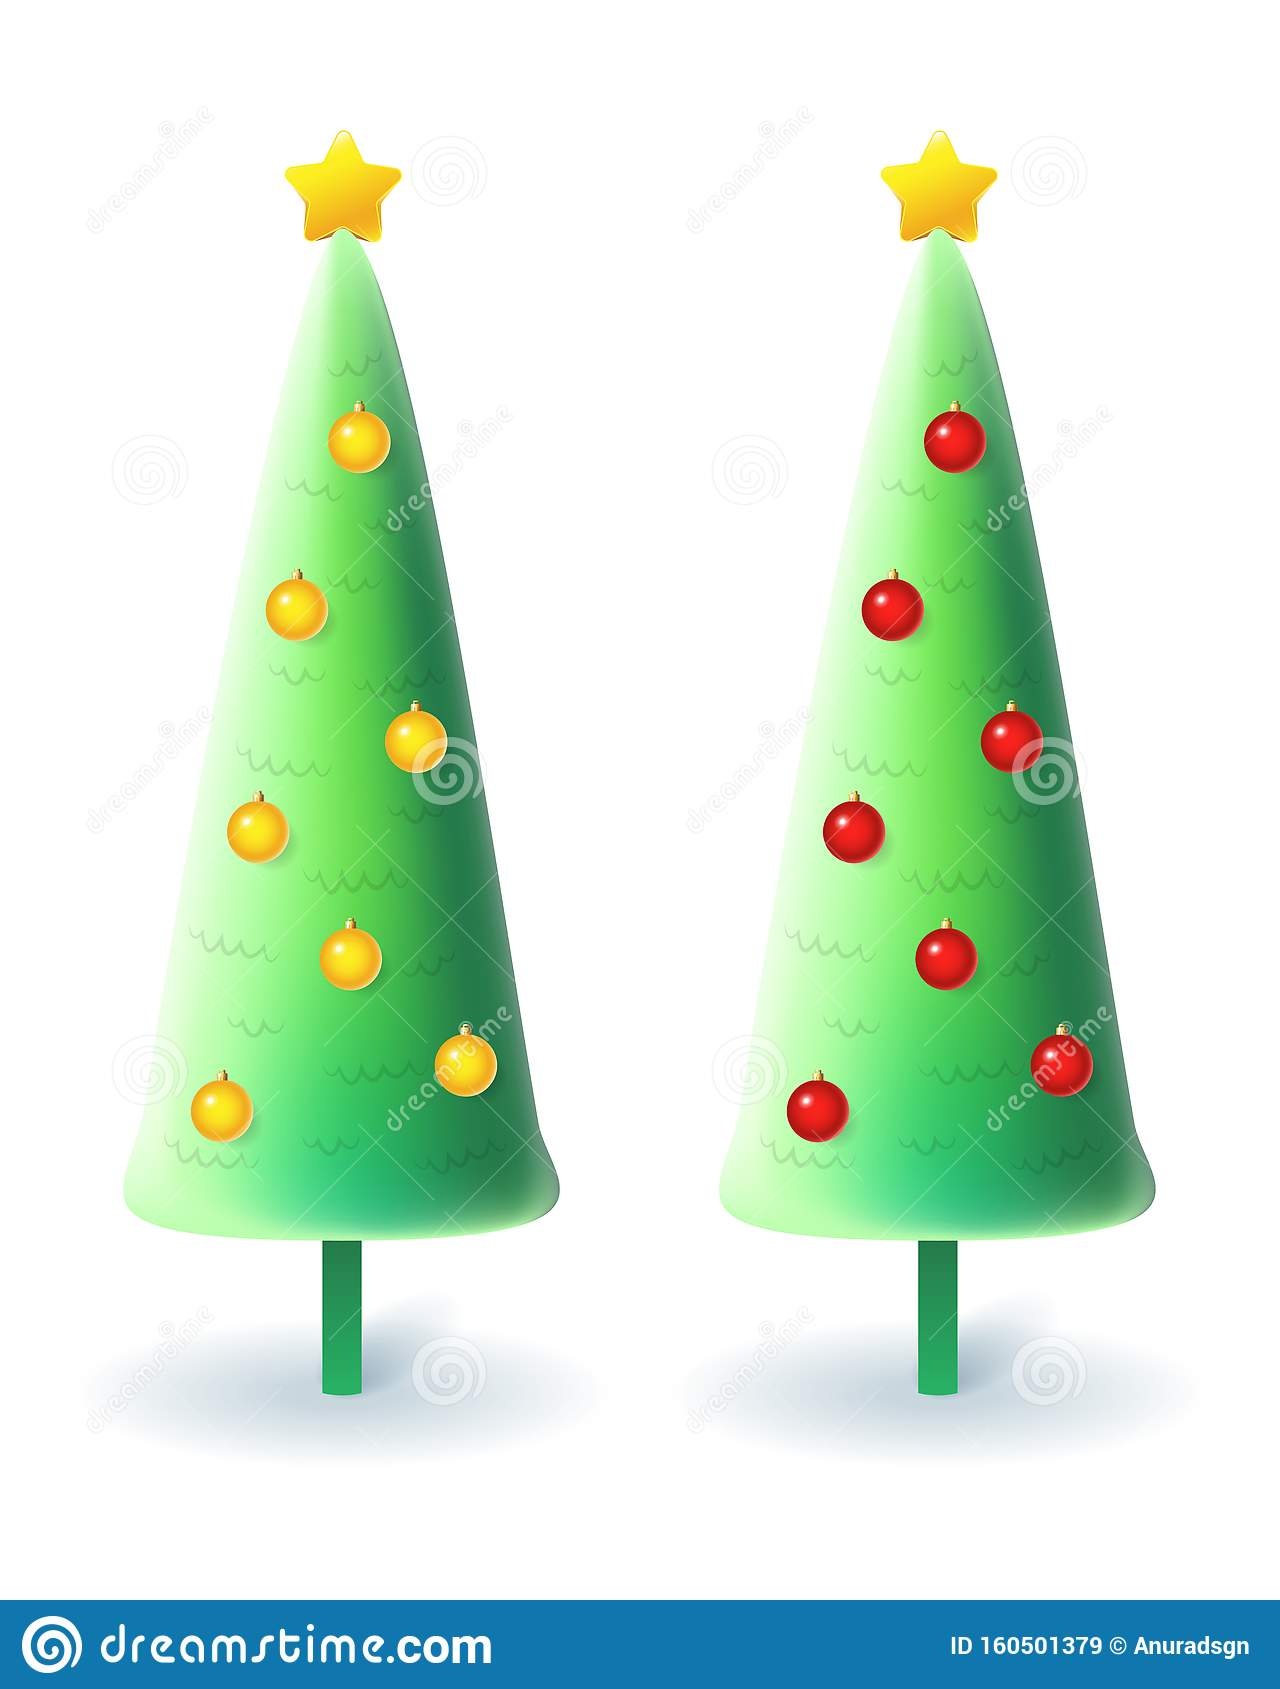 Slim Christmas Trees With Yellow And Red Decorations Vector Illustration Isolated On White Background Stock Vector Illustration Of Element Ball 160501379